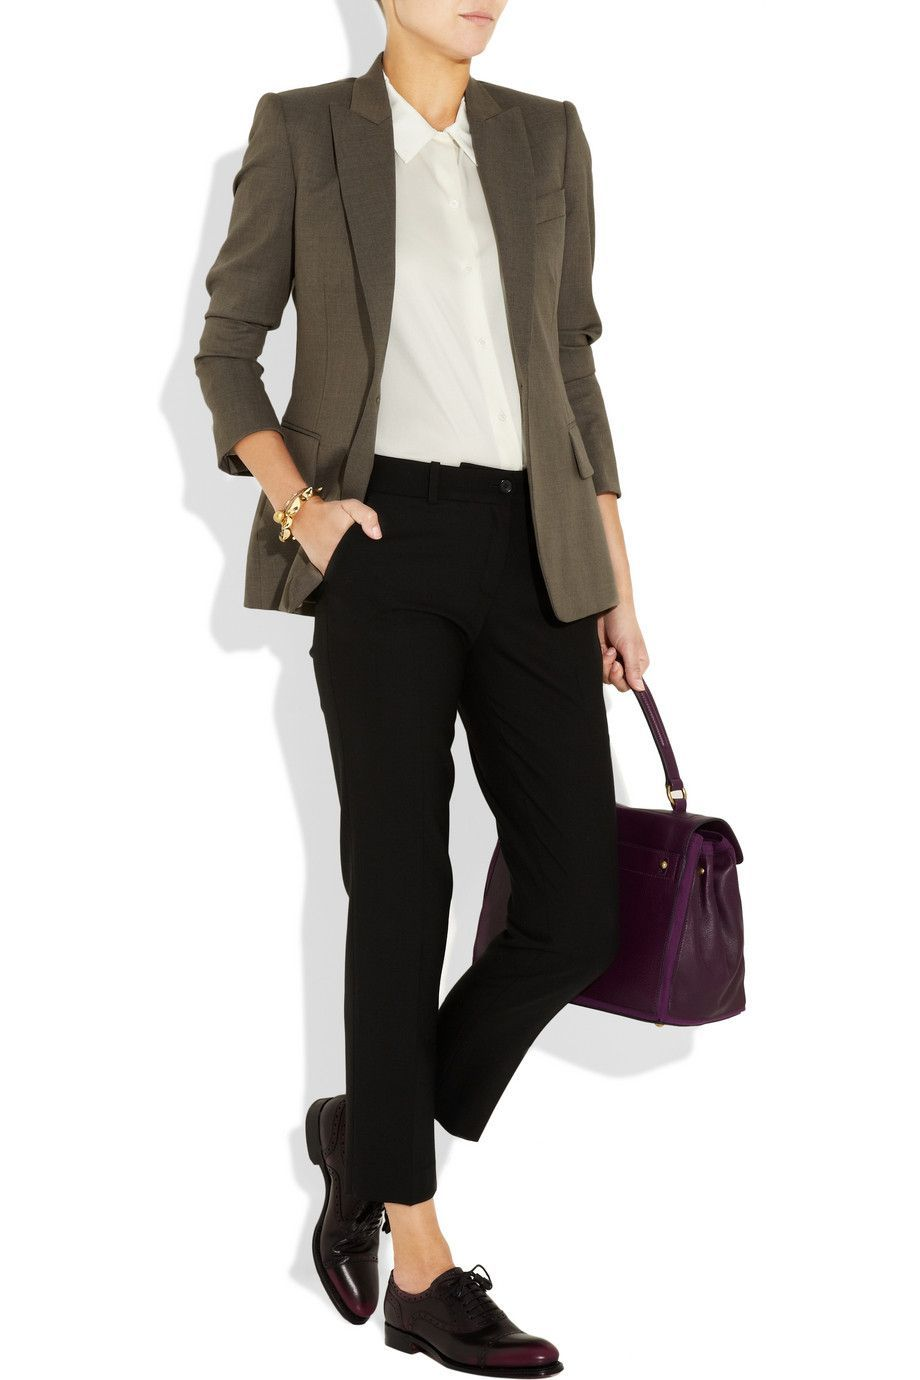 almost-androgynous style that screams sophistication #businesstraveloutfits